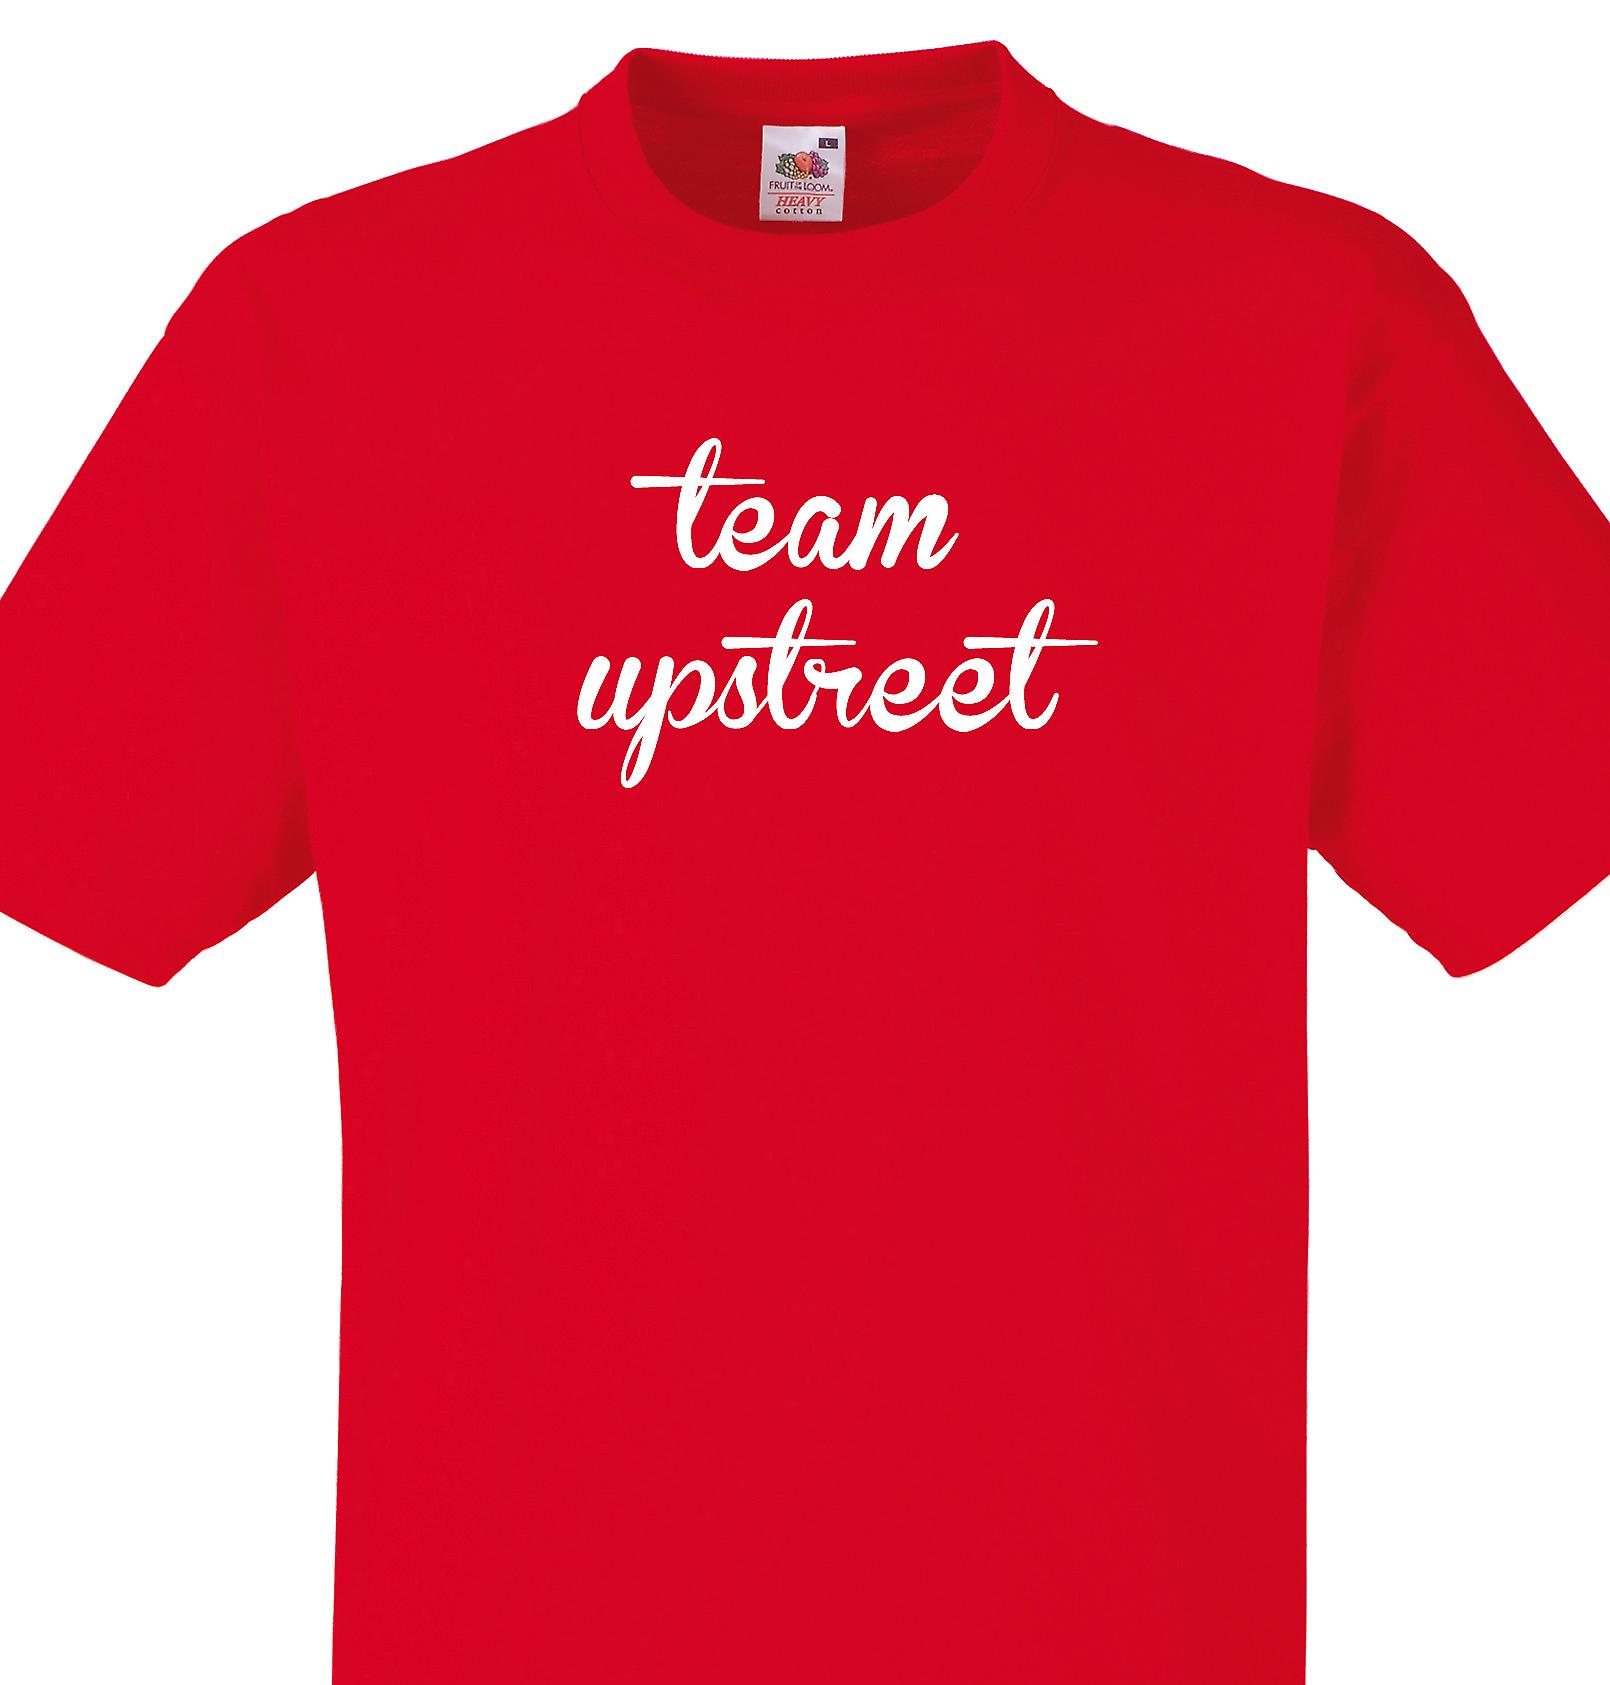 Team Upstreet Red T shirt